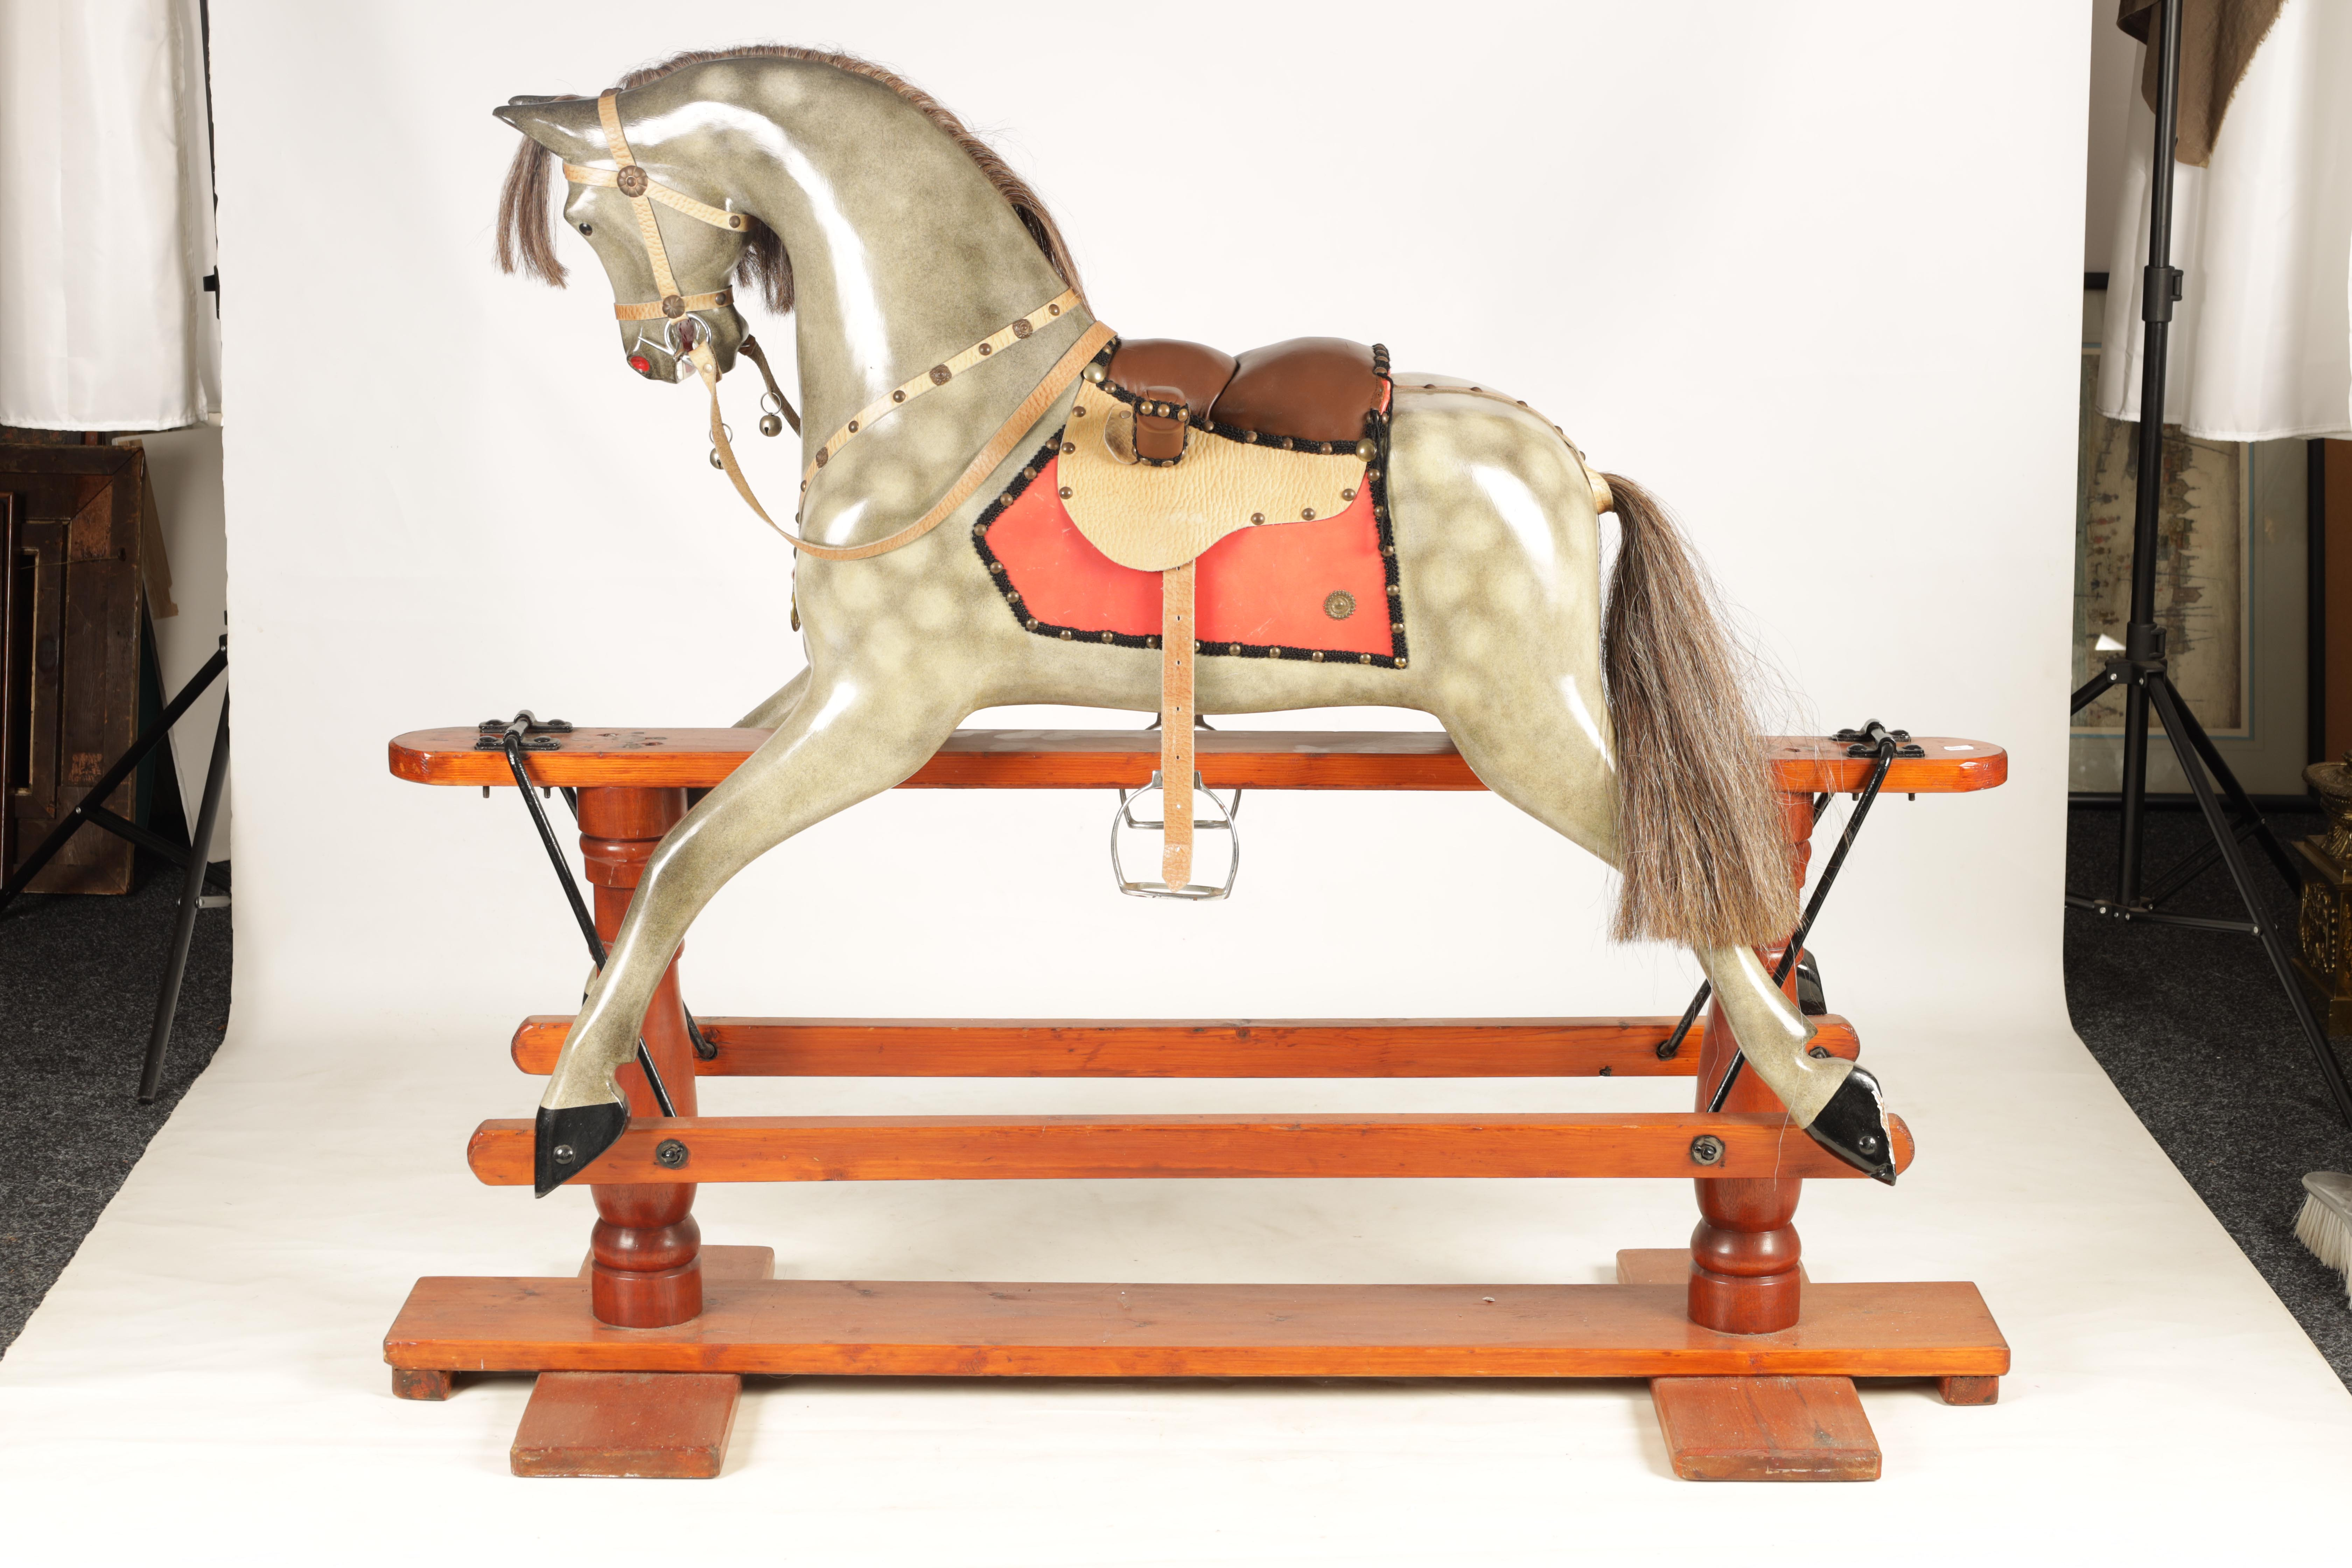 A 20TH CENTURY DAPPLE GREY PAINTED WOODEN ROCKING HORSE with leather seat and bridle 138cm wide - Image 7 of 8